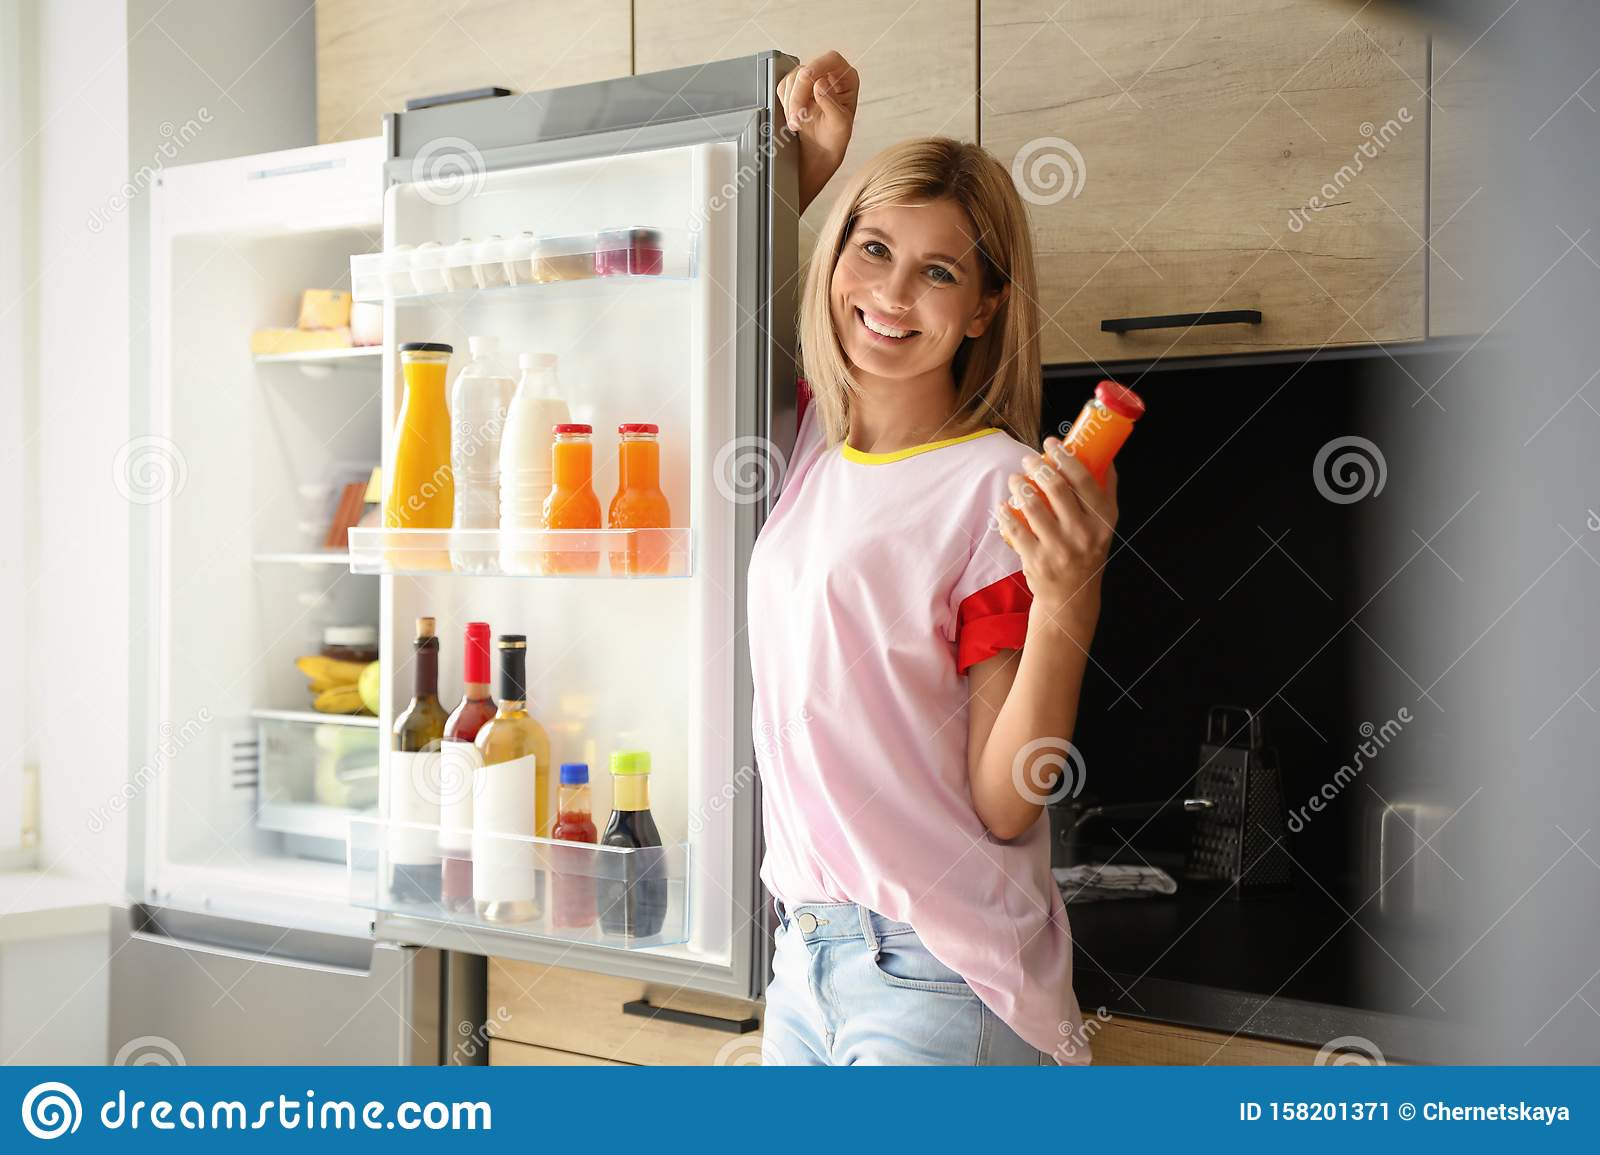 Woman with bottle of juice refrigerator in kitchen